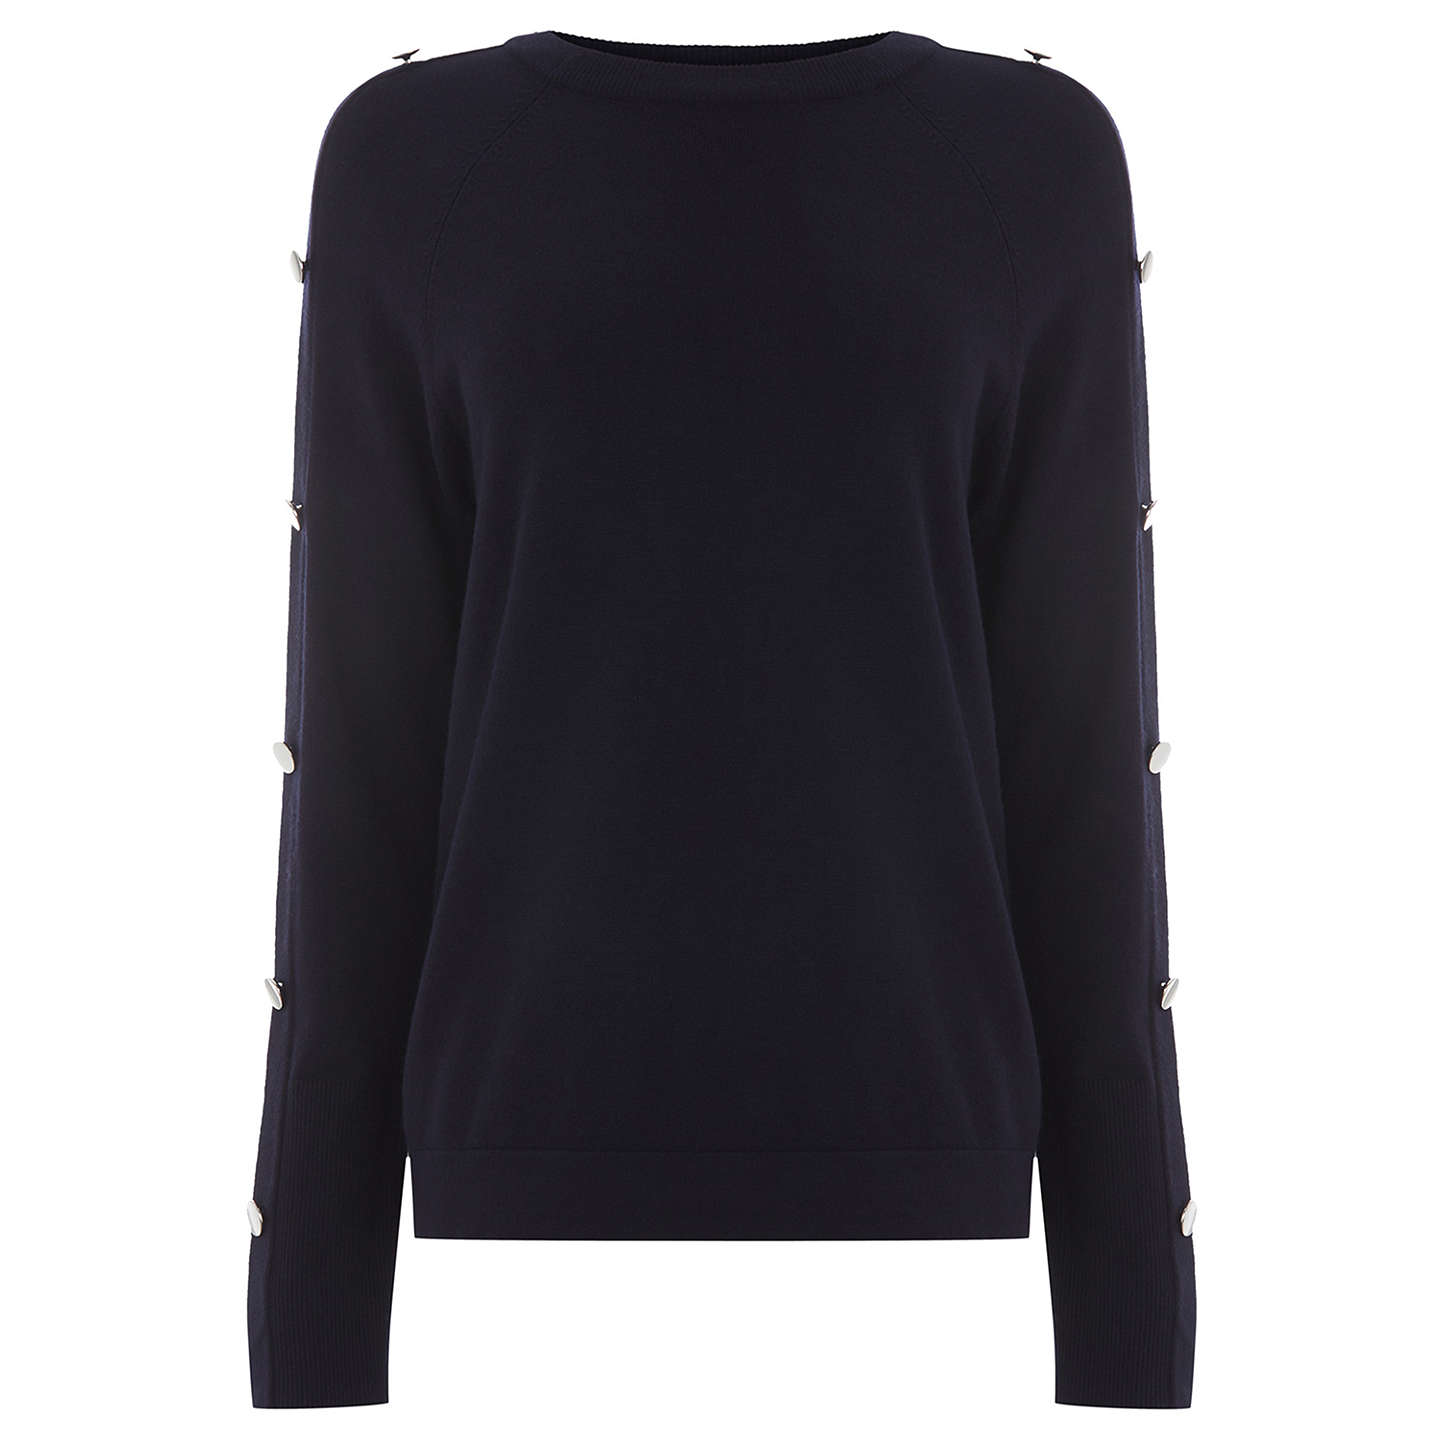 BuyWarehouse Button Sleeve Jumper, Navy, 6 Online at johnlewis.com